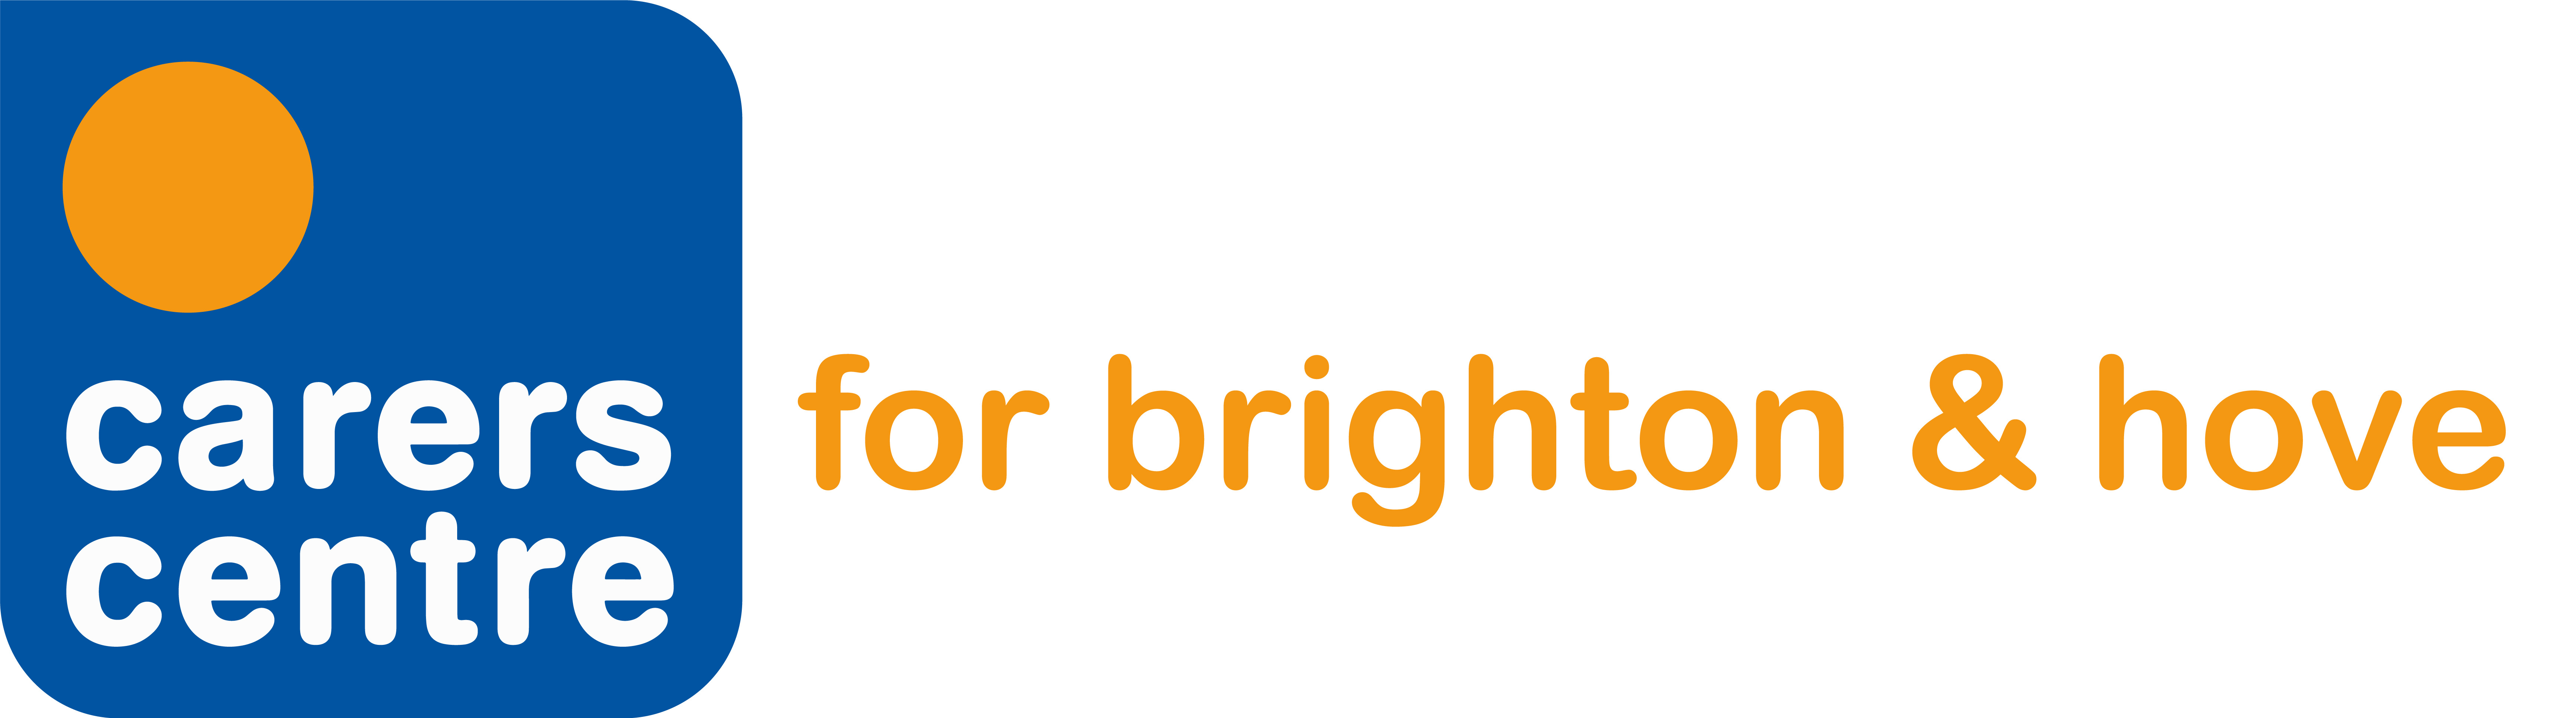 Logo of Carers Centre in Brighton a client of The Wrighty Media Agency